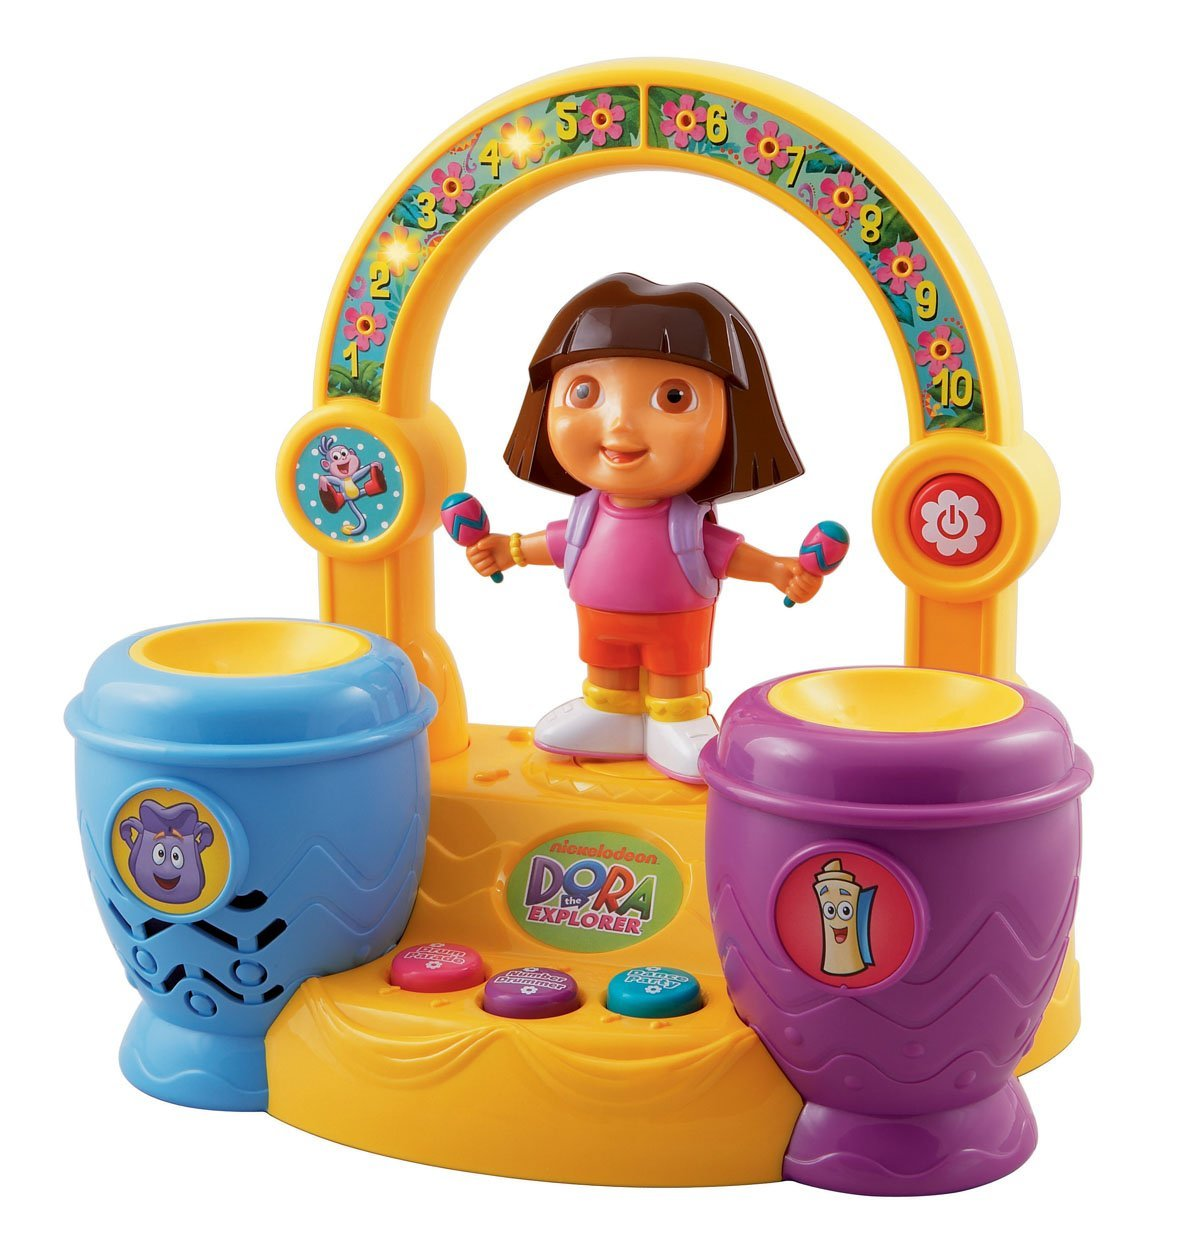 Dora Learning Drums